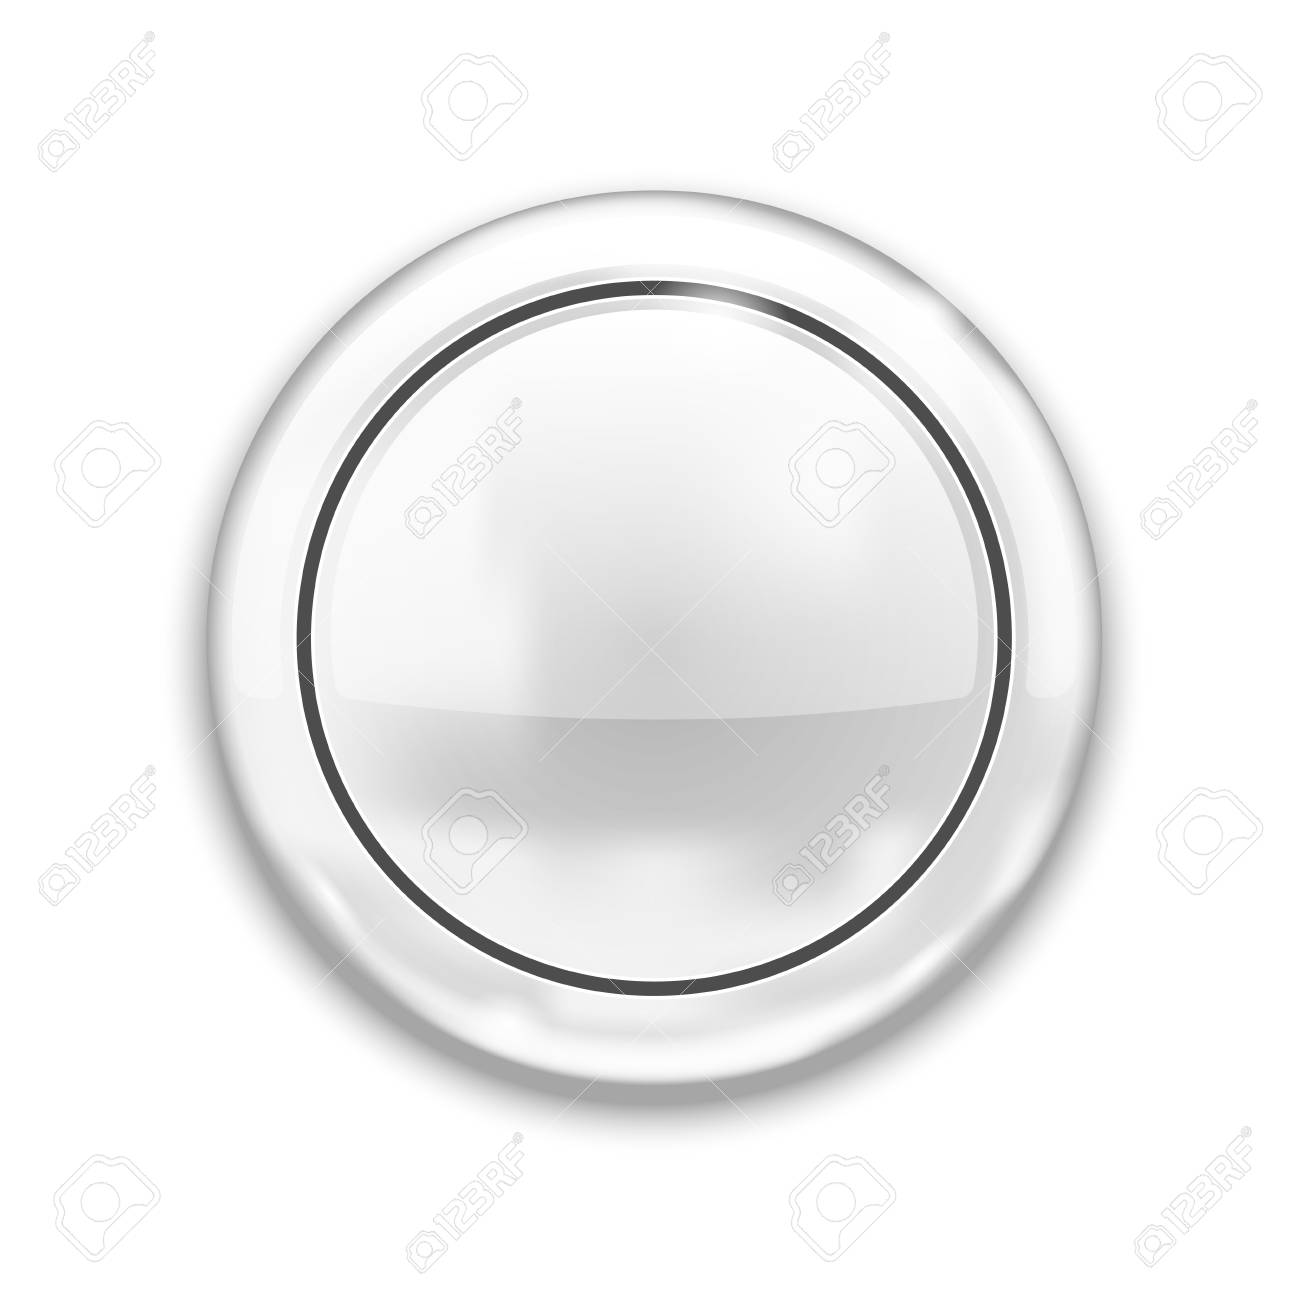 Empty White Button isolated on white background Stock Vector - 18239892